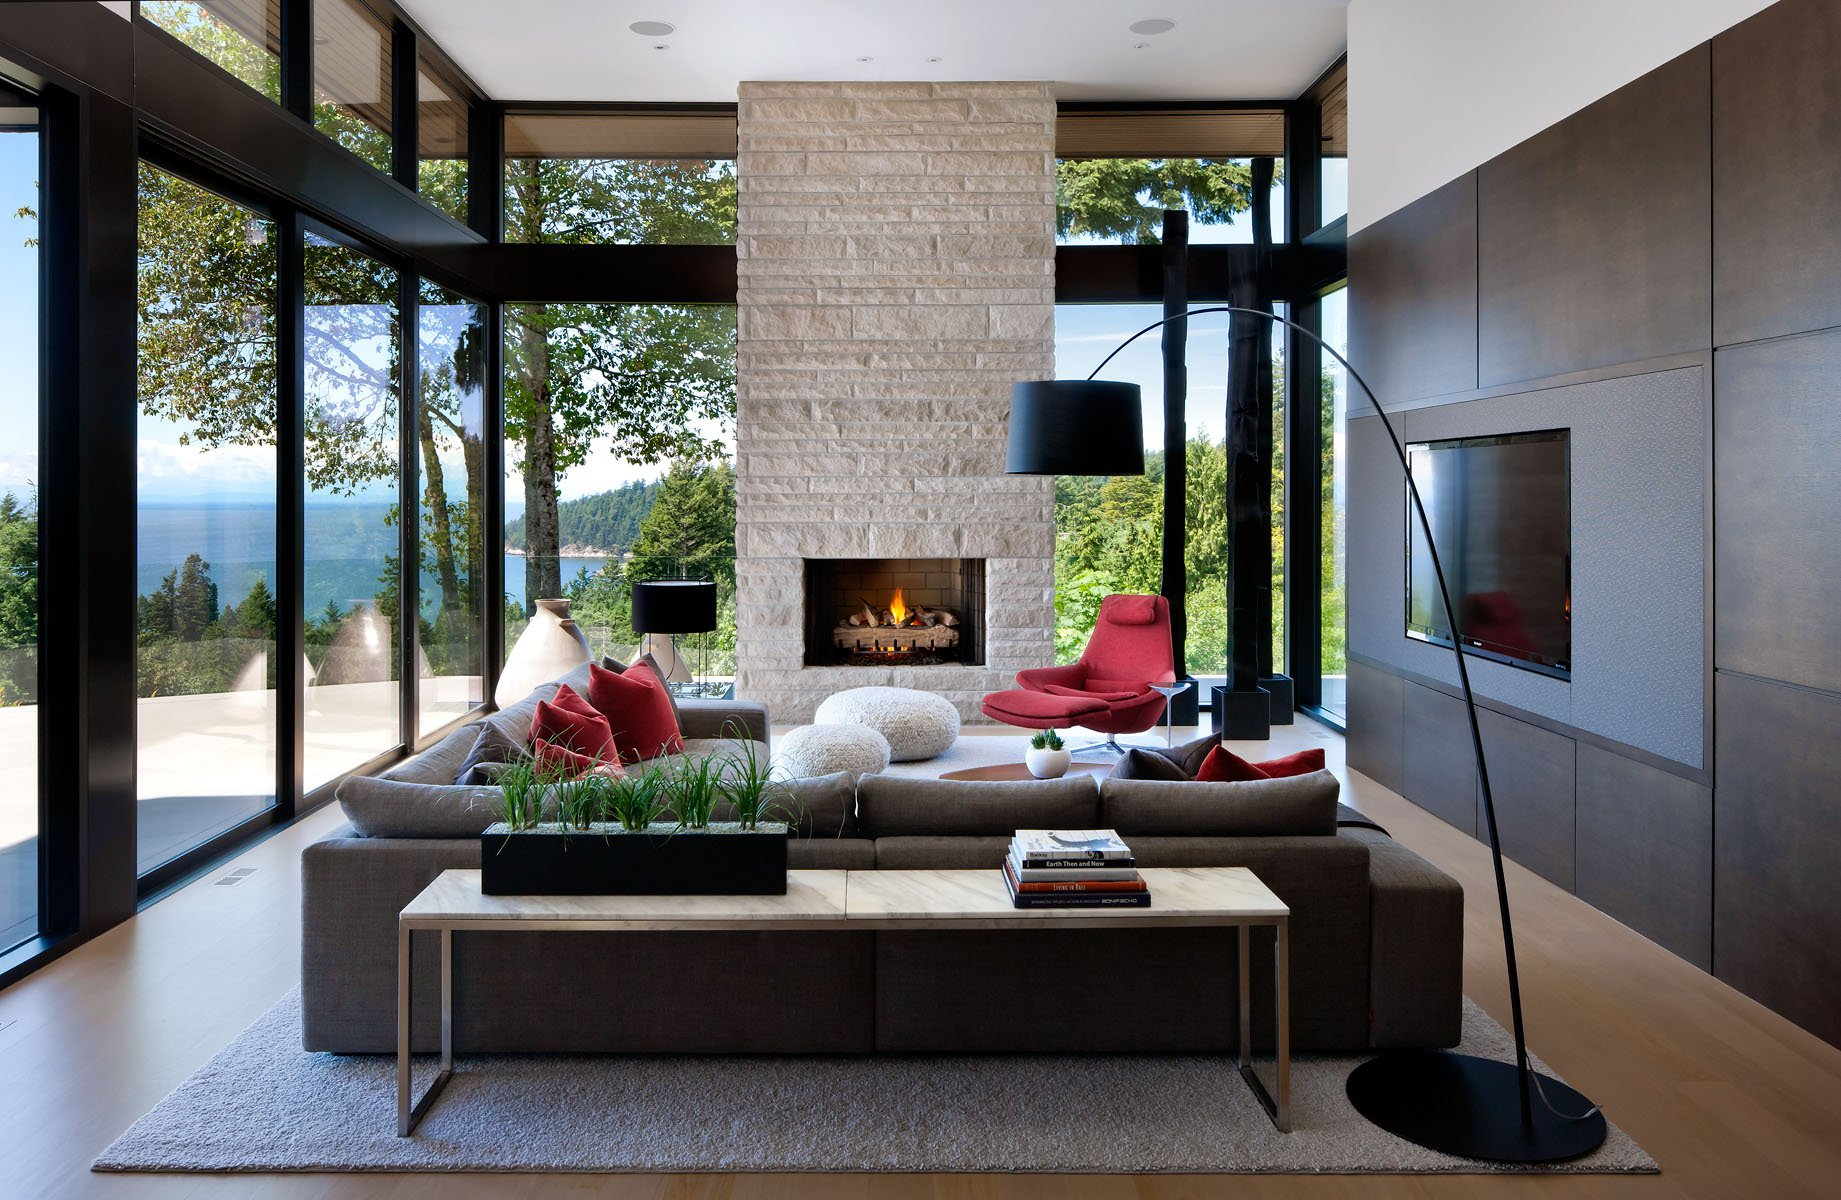 Burkehill Residence by Craig Chevalier and Raven Inside Interior